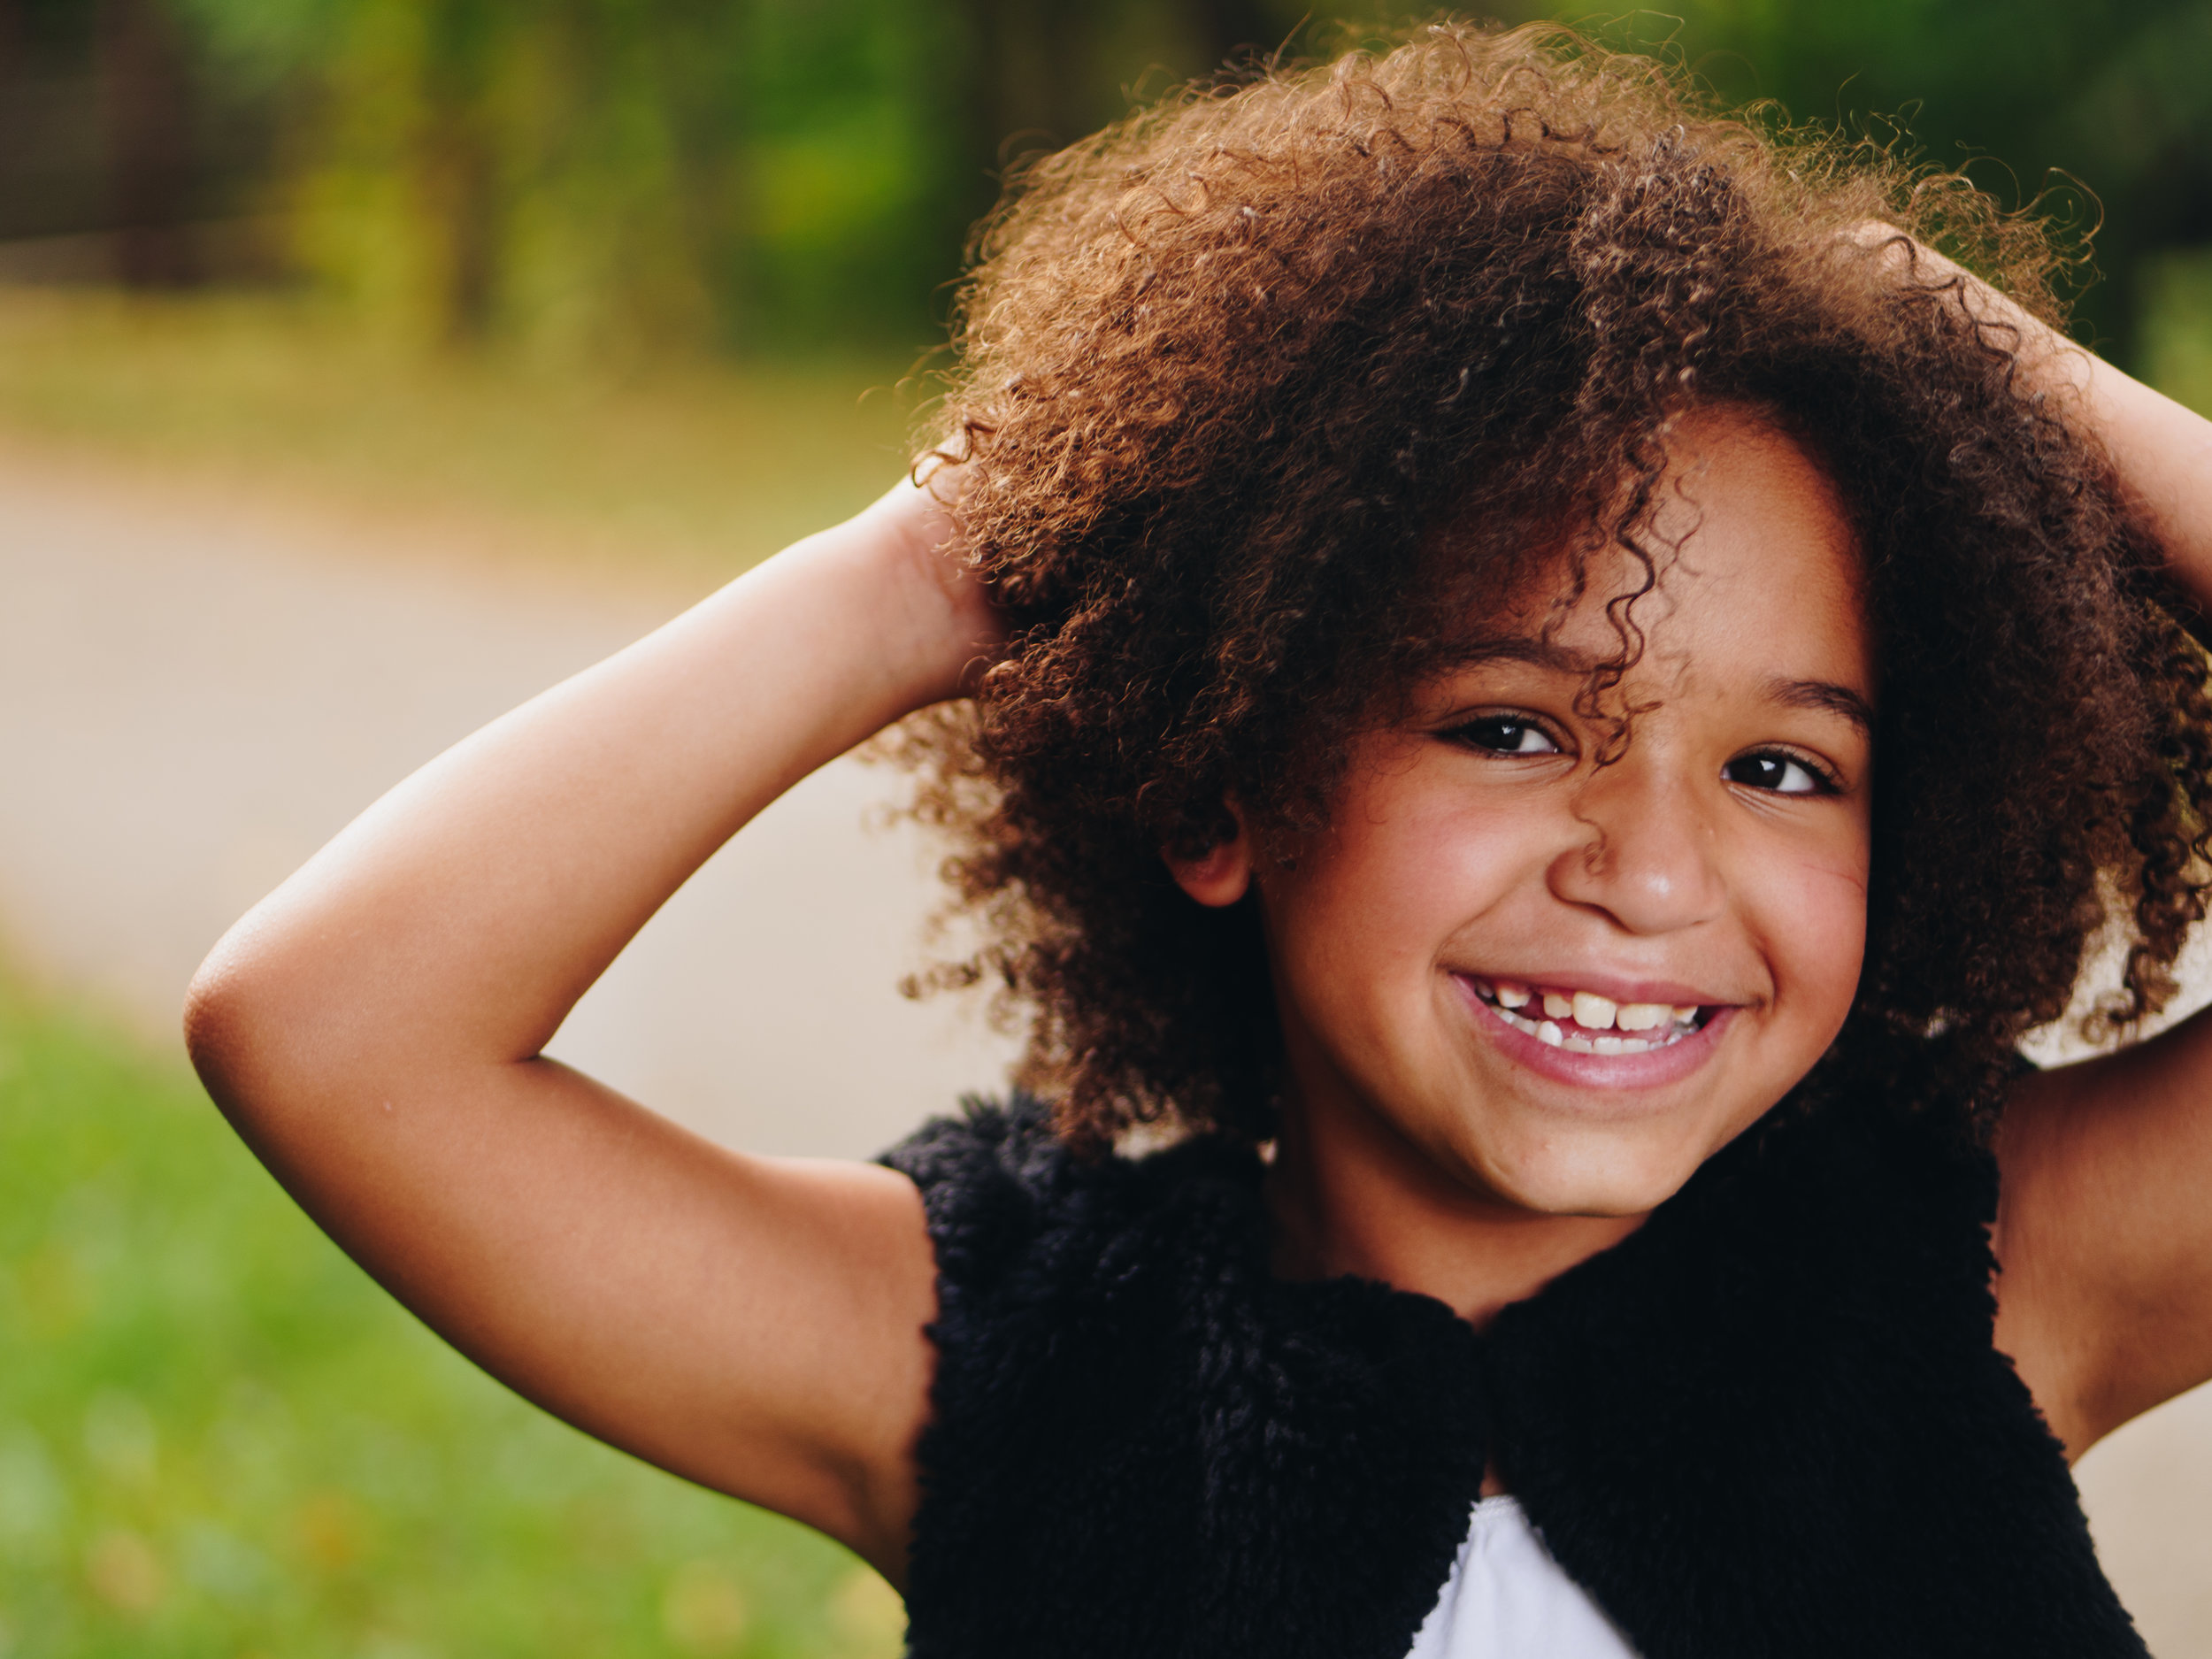 Young girl smiling on the Myofunctional Therapy page